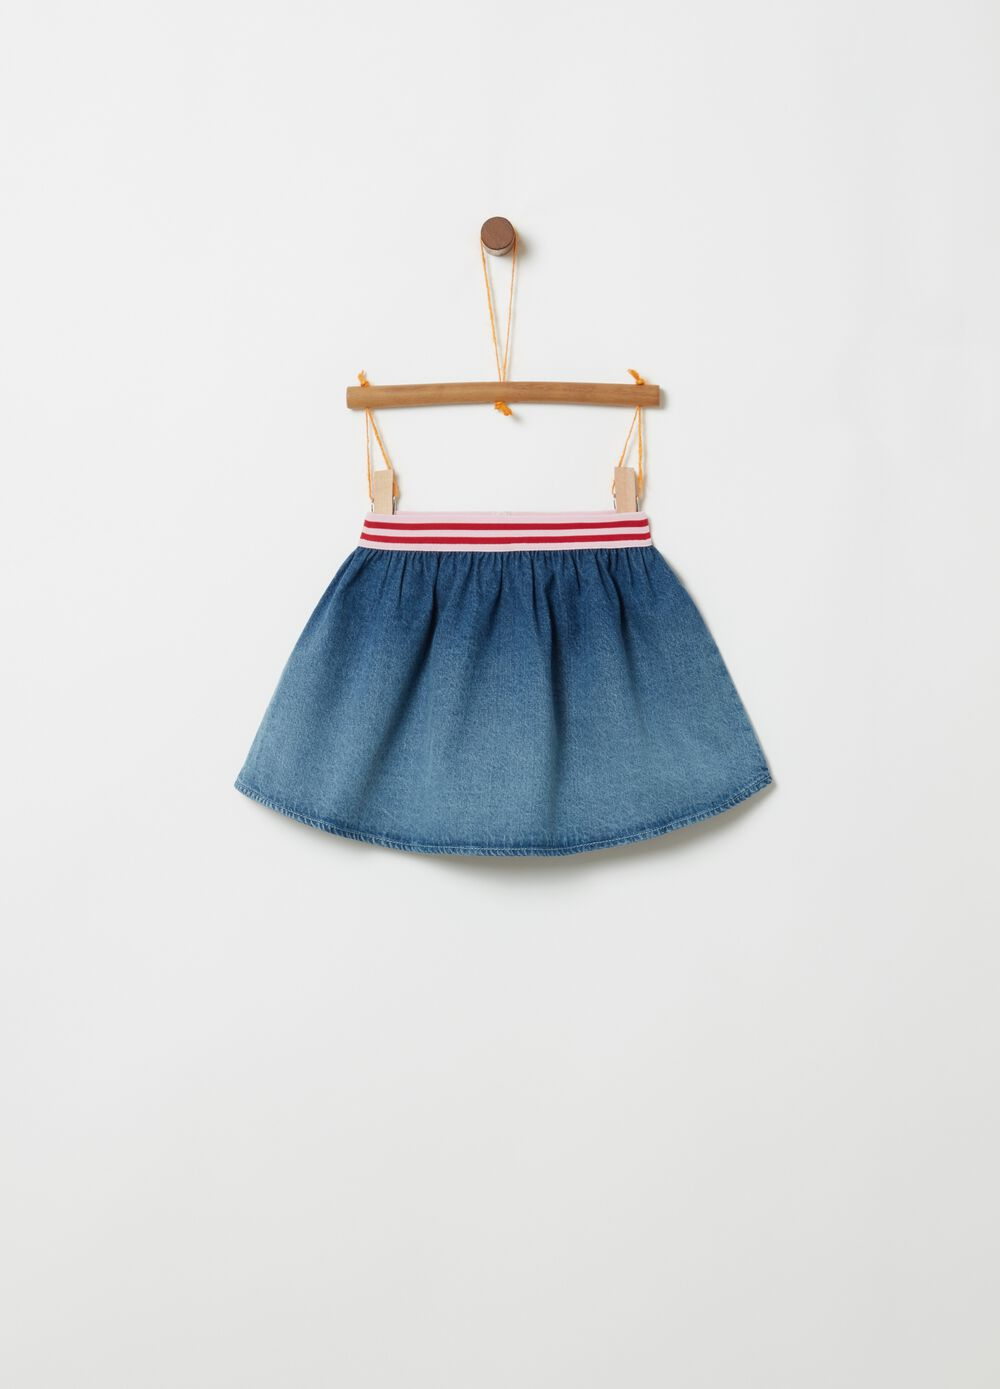 Short denim skirt with striped inserts